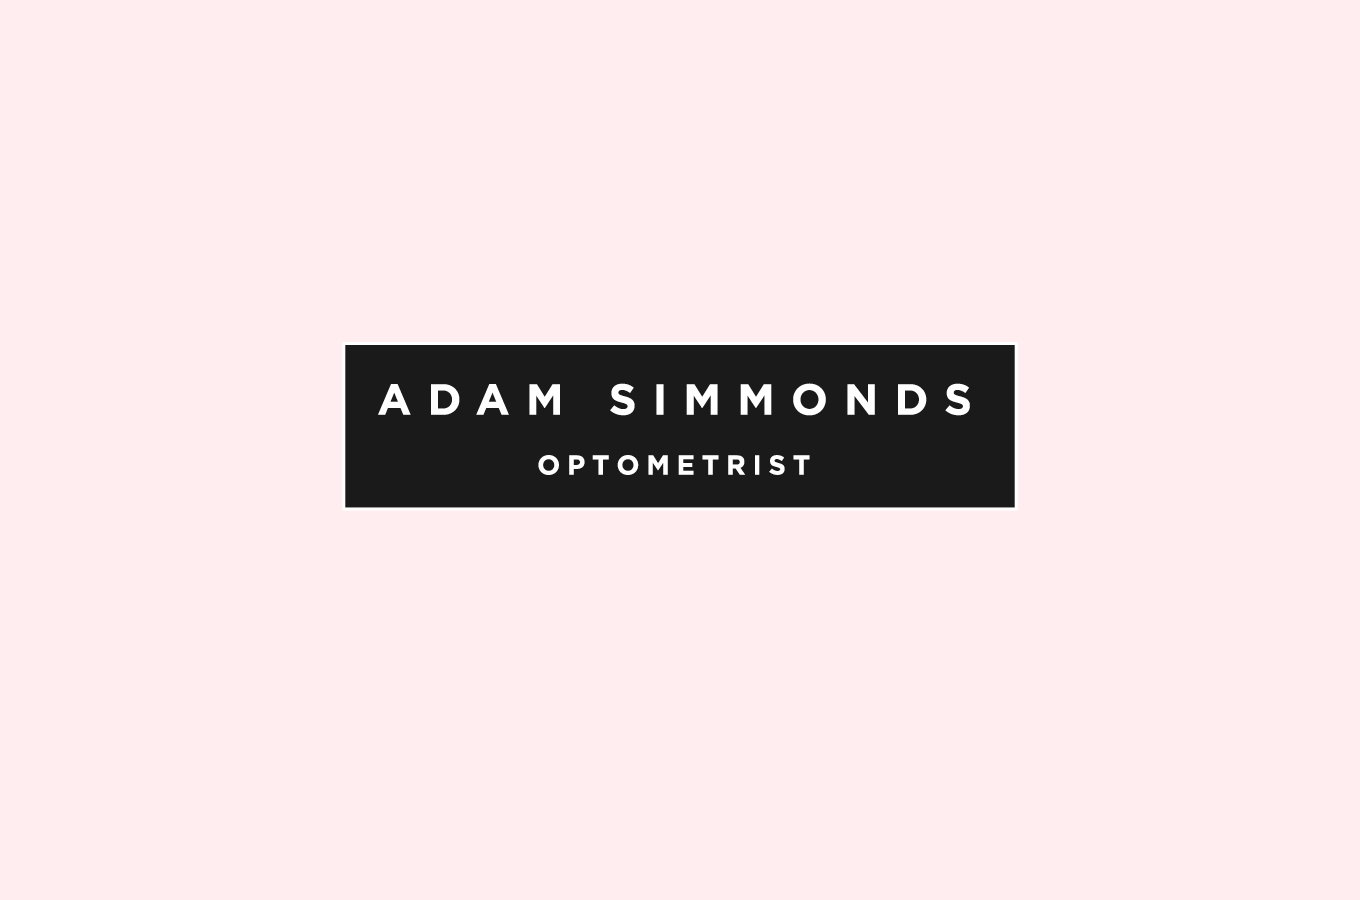 Adam Simmonds brand identity